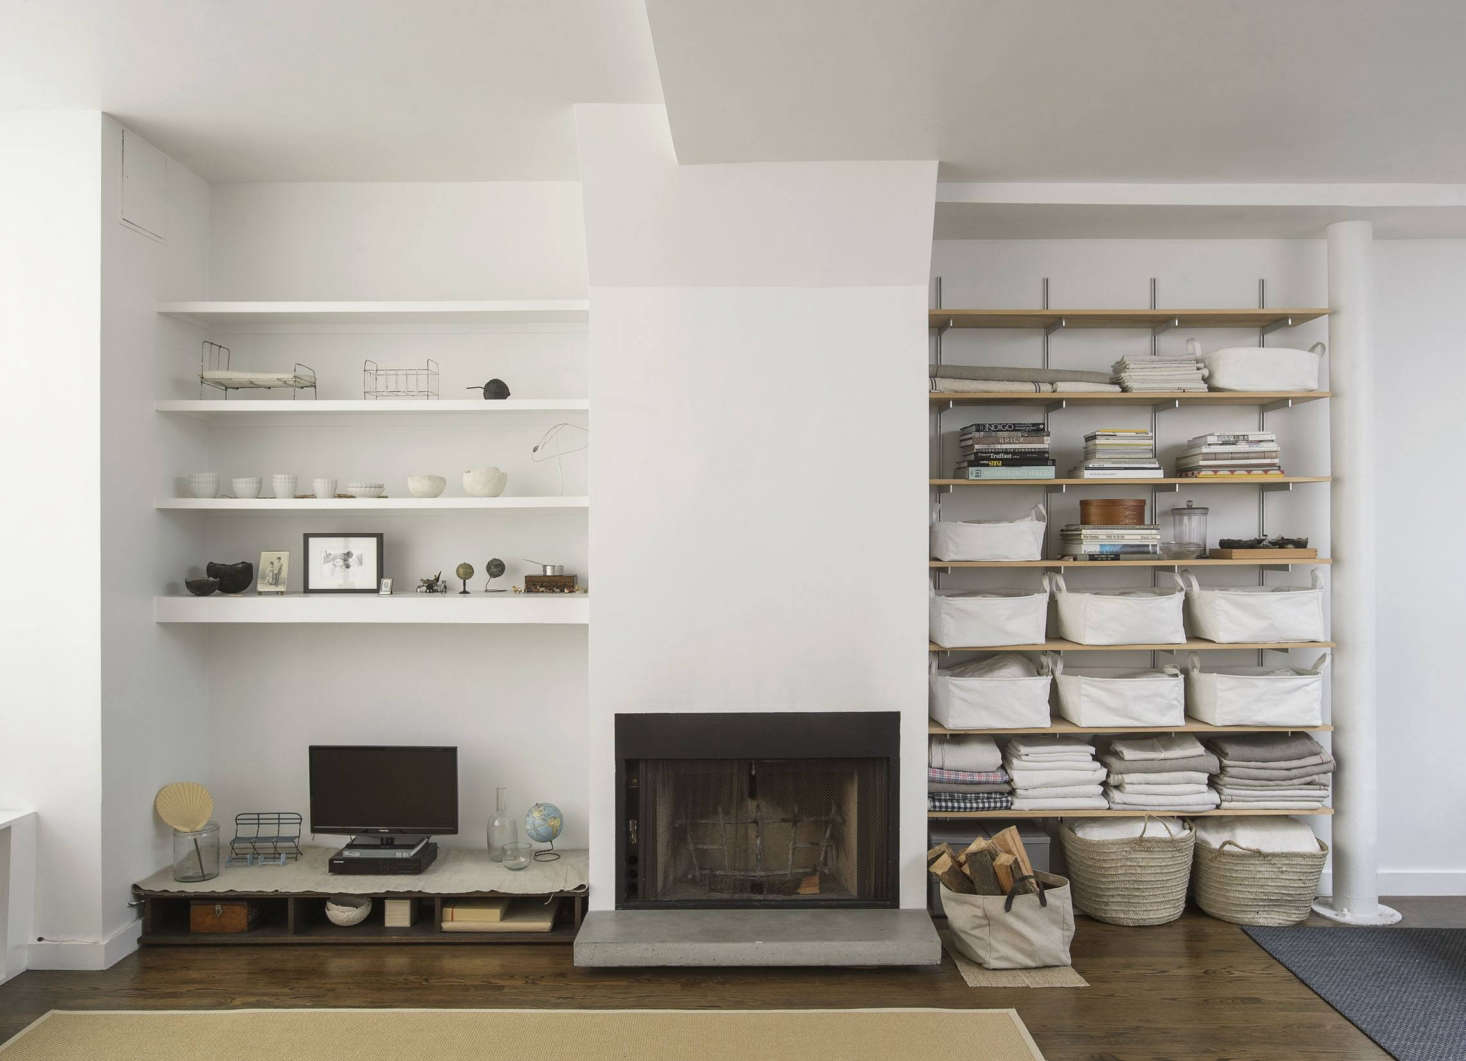 On one side of the fireplace is a small television and collections on display. On the other, built in Rakk shelvingholds stacks of linens, old issues of Selvedge magazine, Japanese pattern books, and art biographies on Rei Kawakubo and Henri-Cartier Bresson, among others.